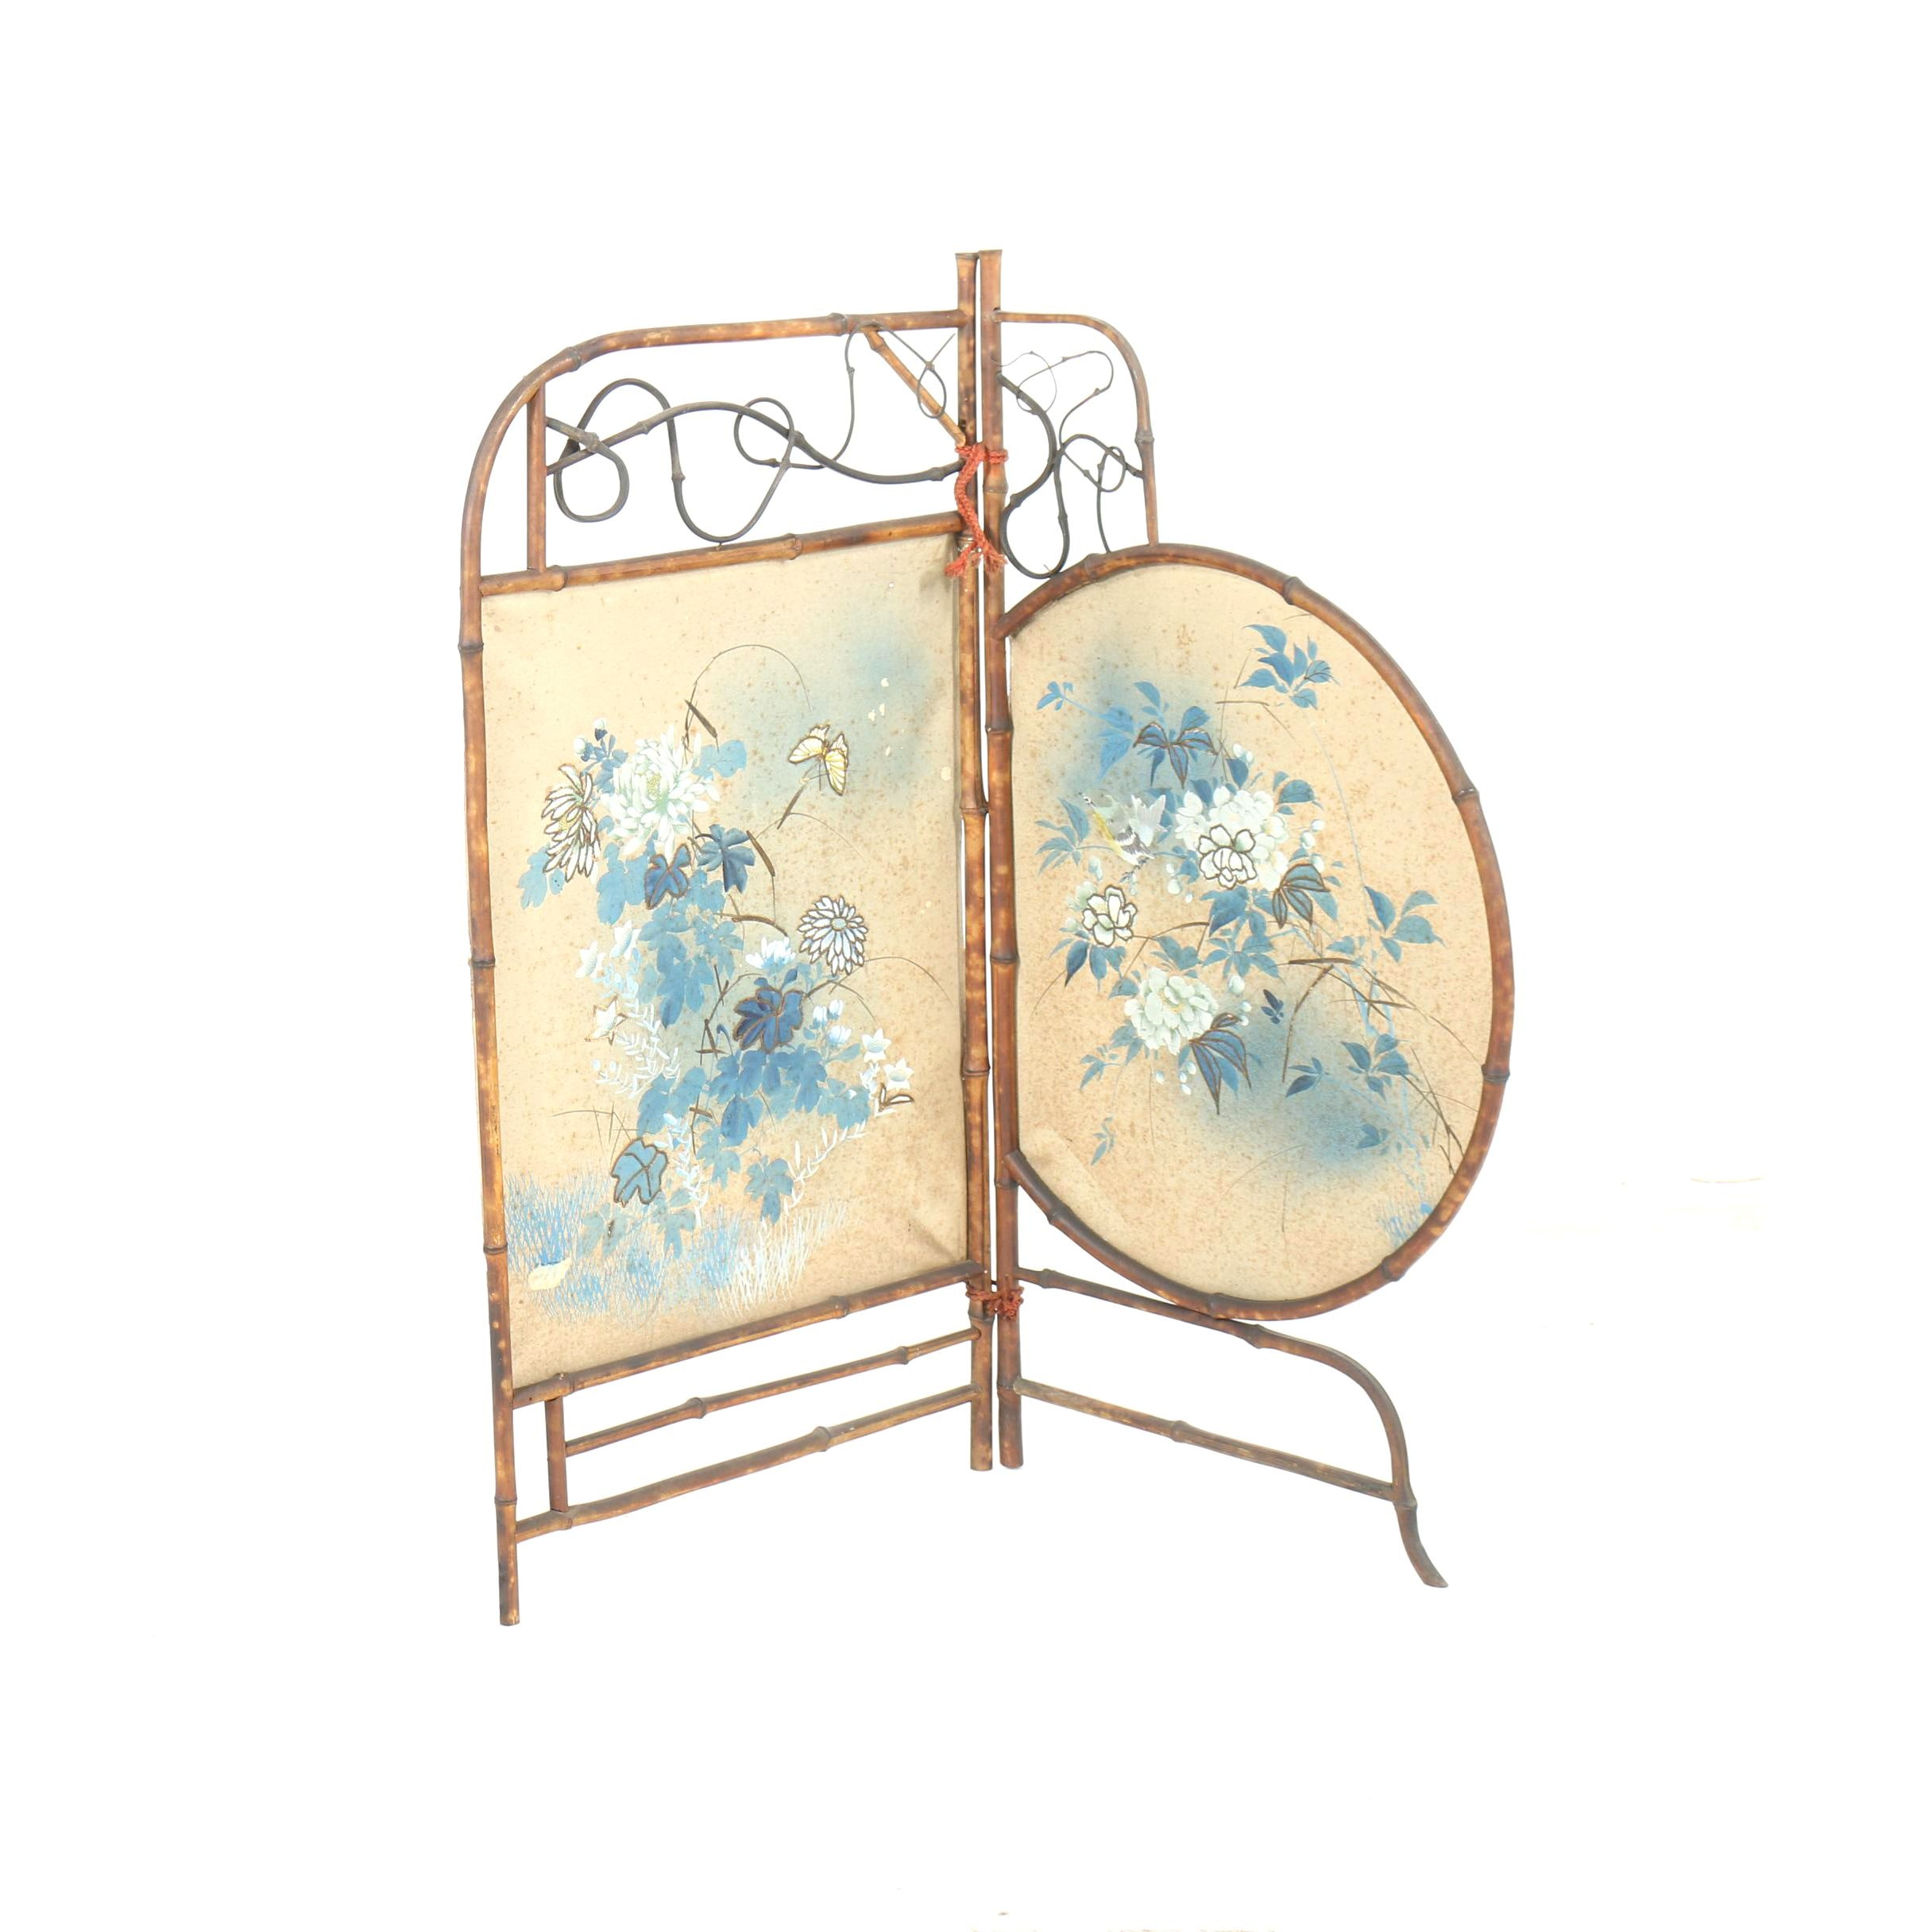 Chinoiserie Asymmetrical Folding Fireplace Screen with Embellished Paper Panels